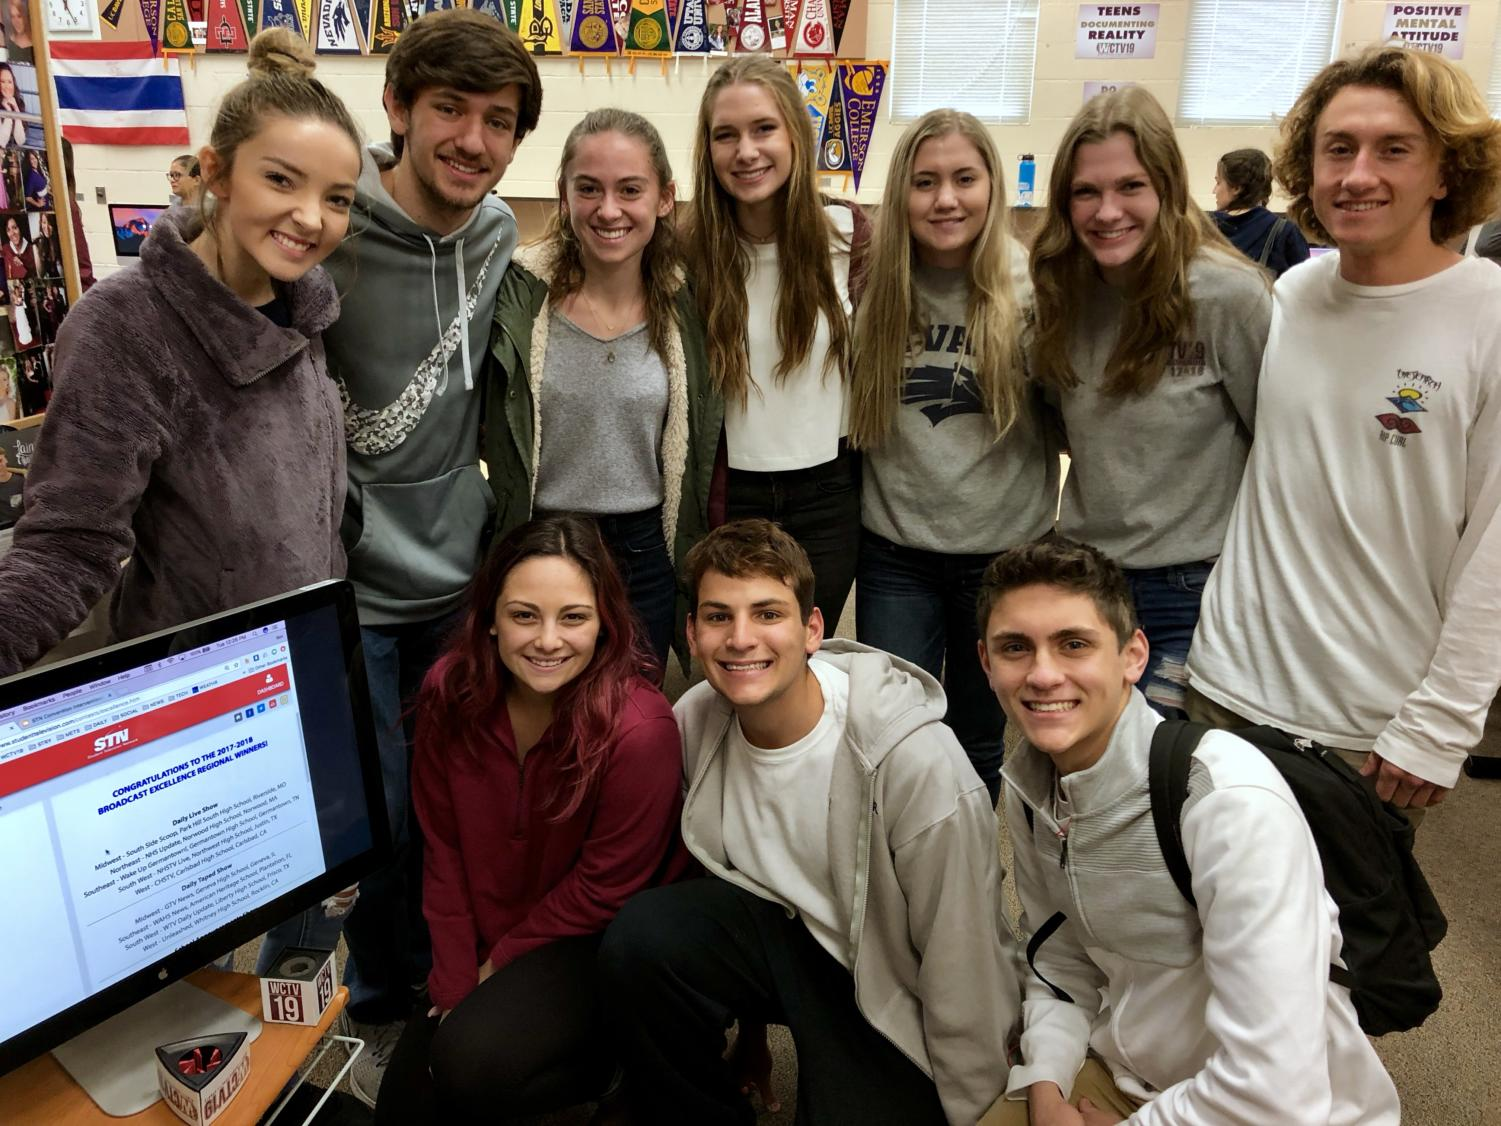 In Mr. Ben Barnholdt's broadcast class, the leadership staff celebrates finding out they will be eligible to partake in a national competition Jan. 23. Photo by Mr. Ben Barnholdt.